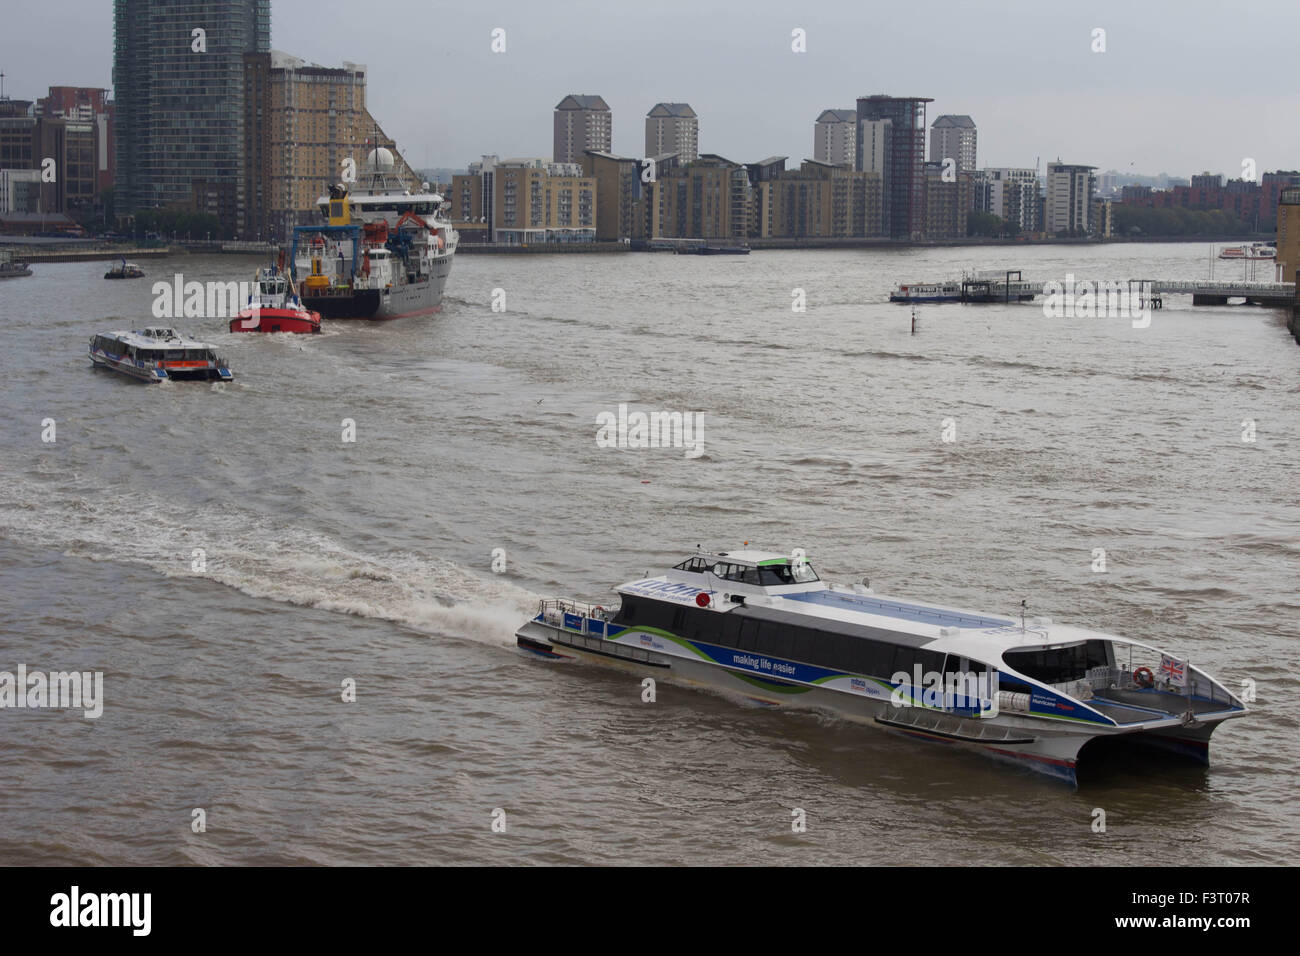 London, UK. 12th October 2015. The National Oceanography Centre's Royal Research Ship (RRS) 'Discovery' - Stock Image